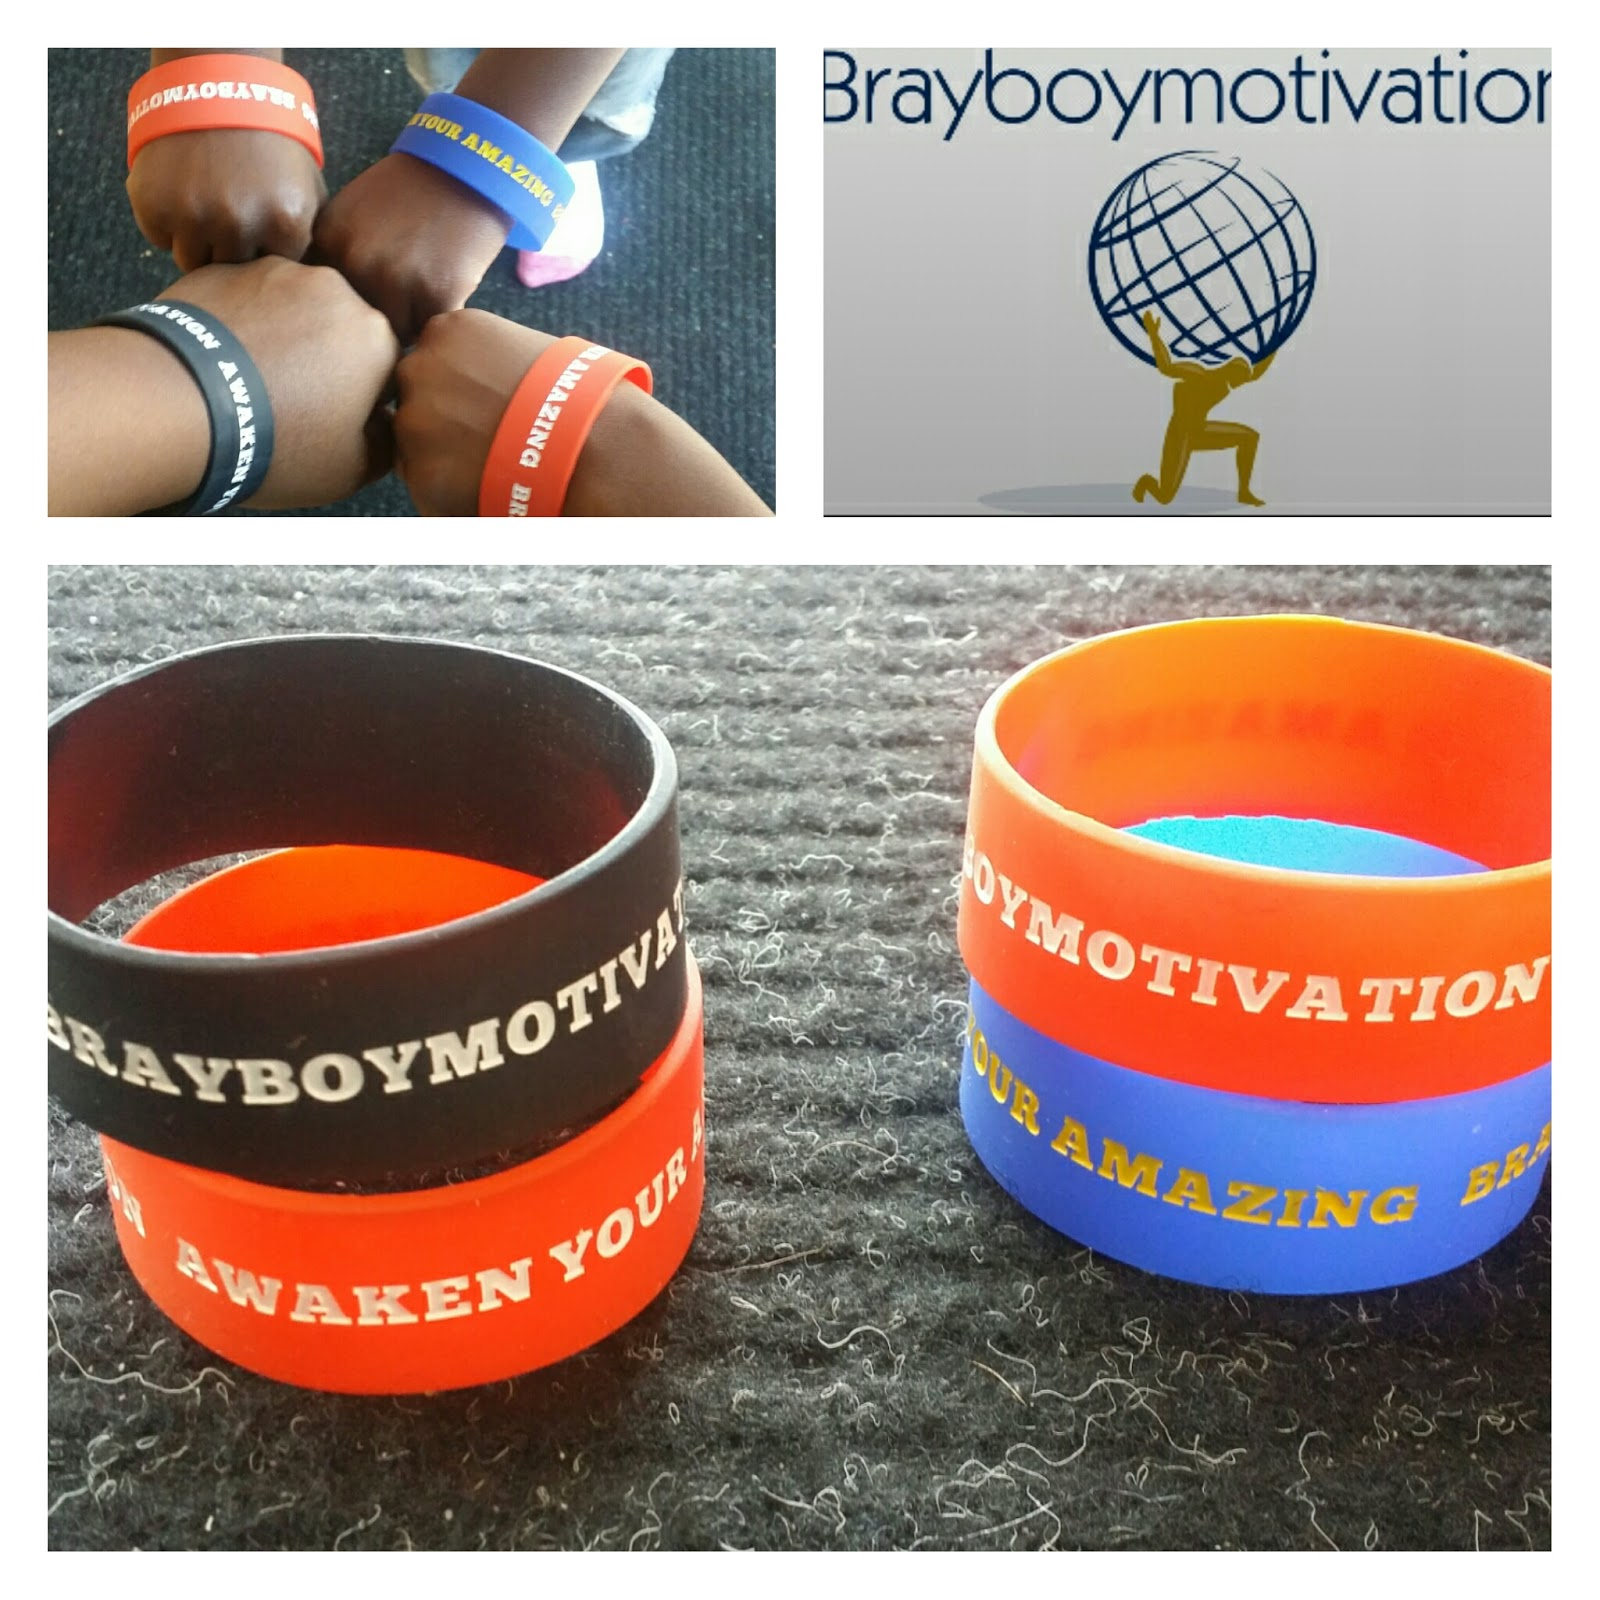 Brayboymotivation Awaken Your Amazing Free Bracelets In The Mail